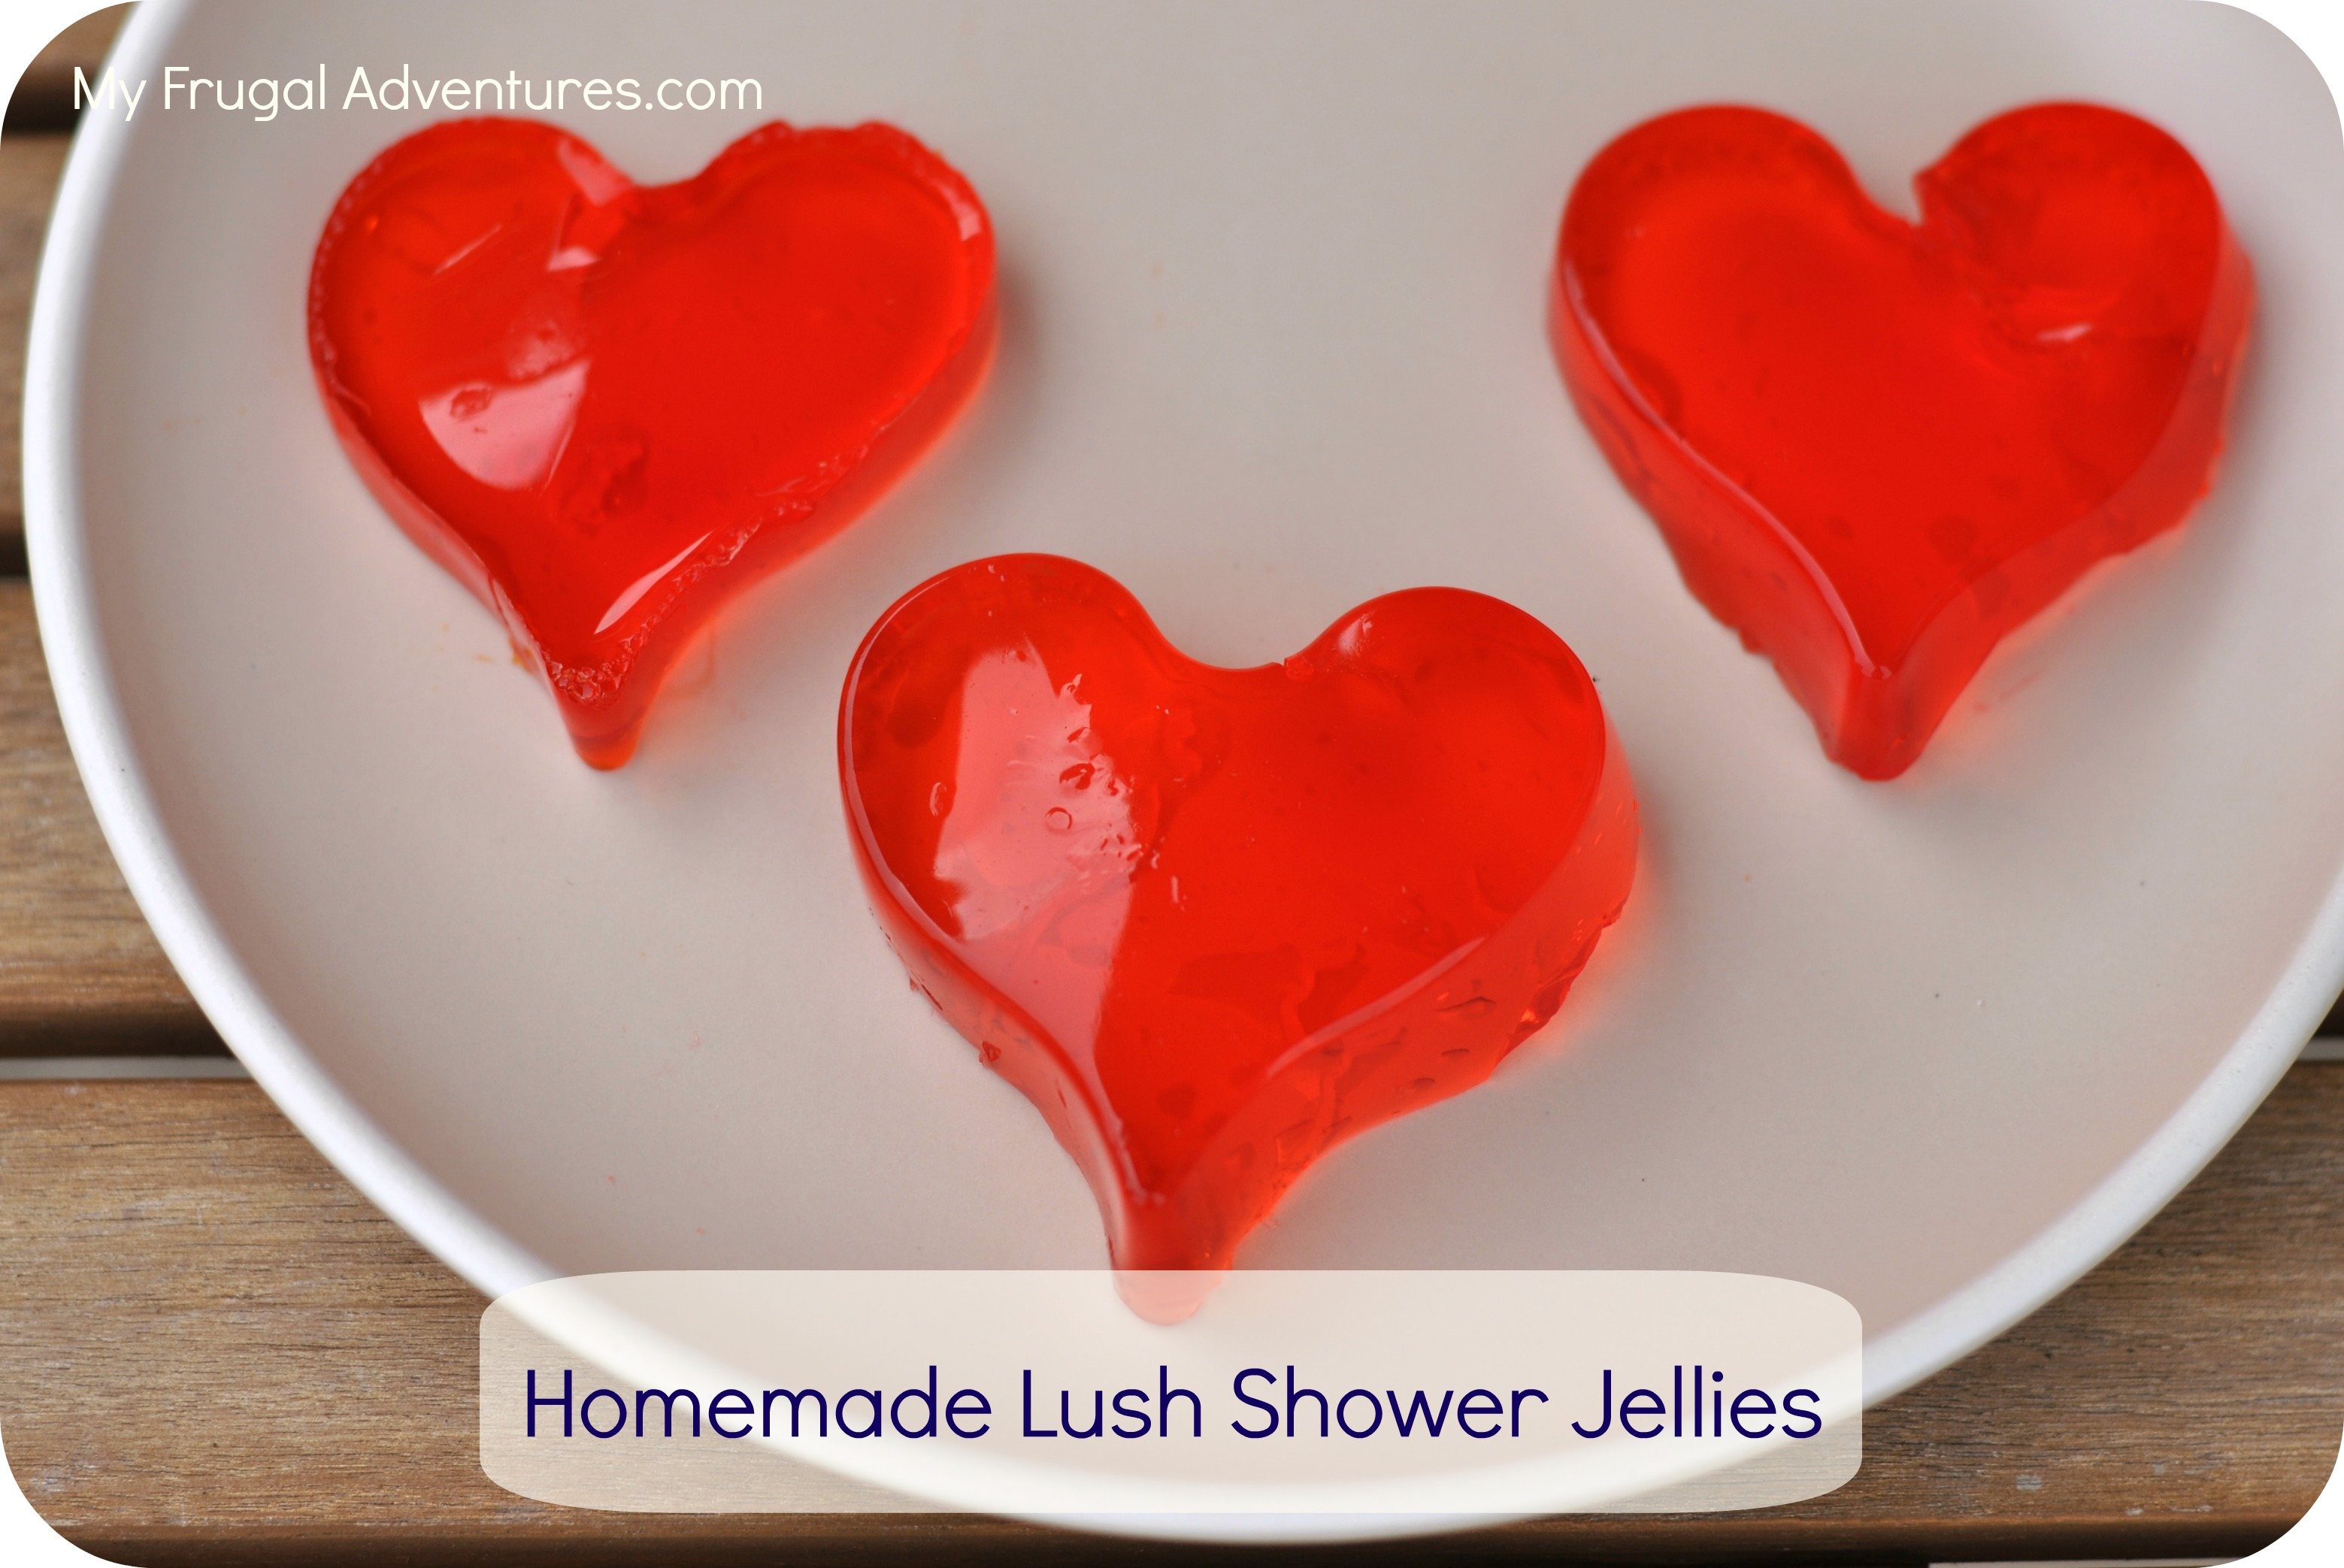 Homemade Lush Shower Jellies